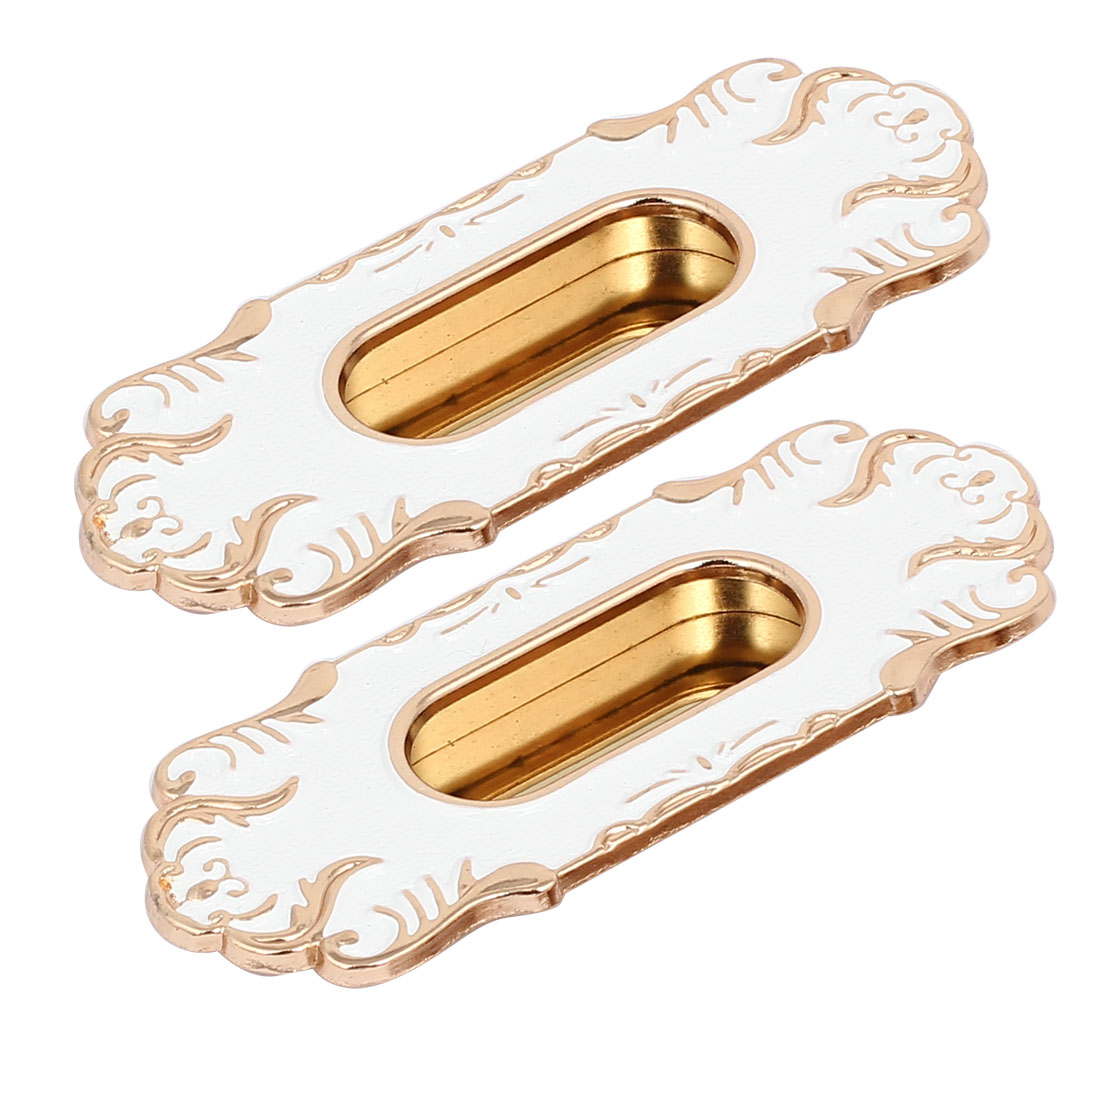 64mm Hole Spacing Metal Antique Style Flush Pull Handle Gold Tone White 2pcs